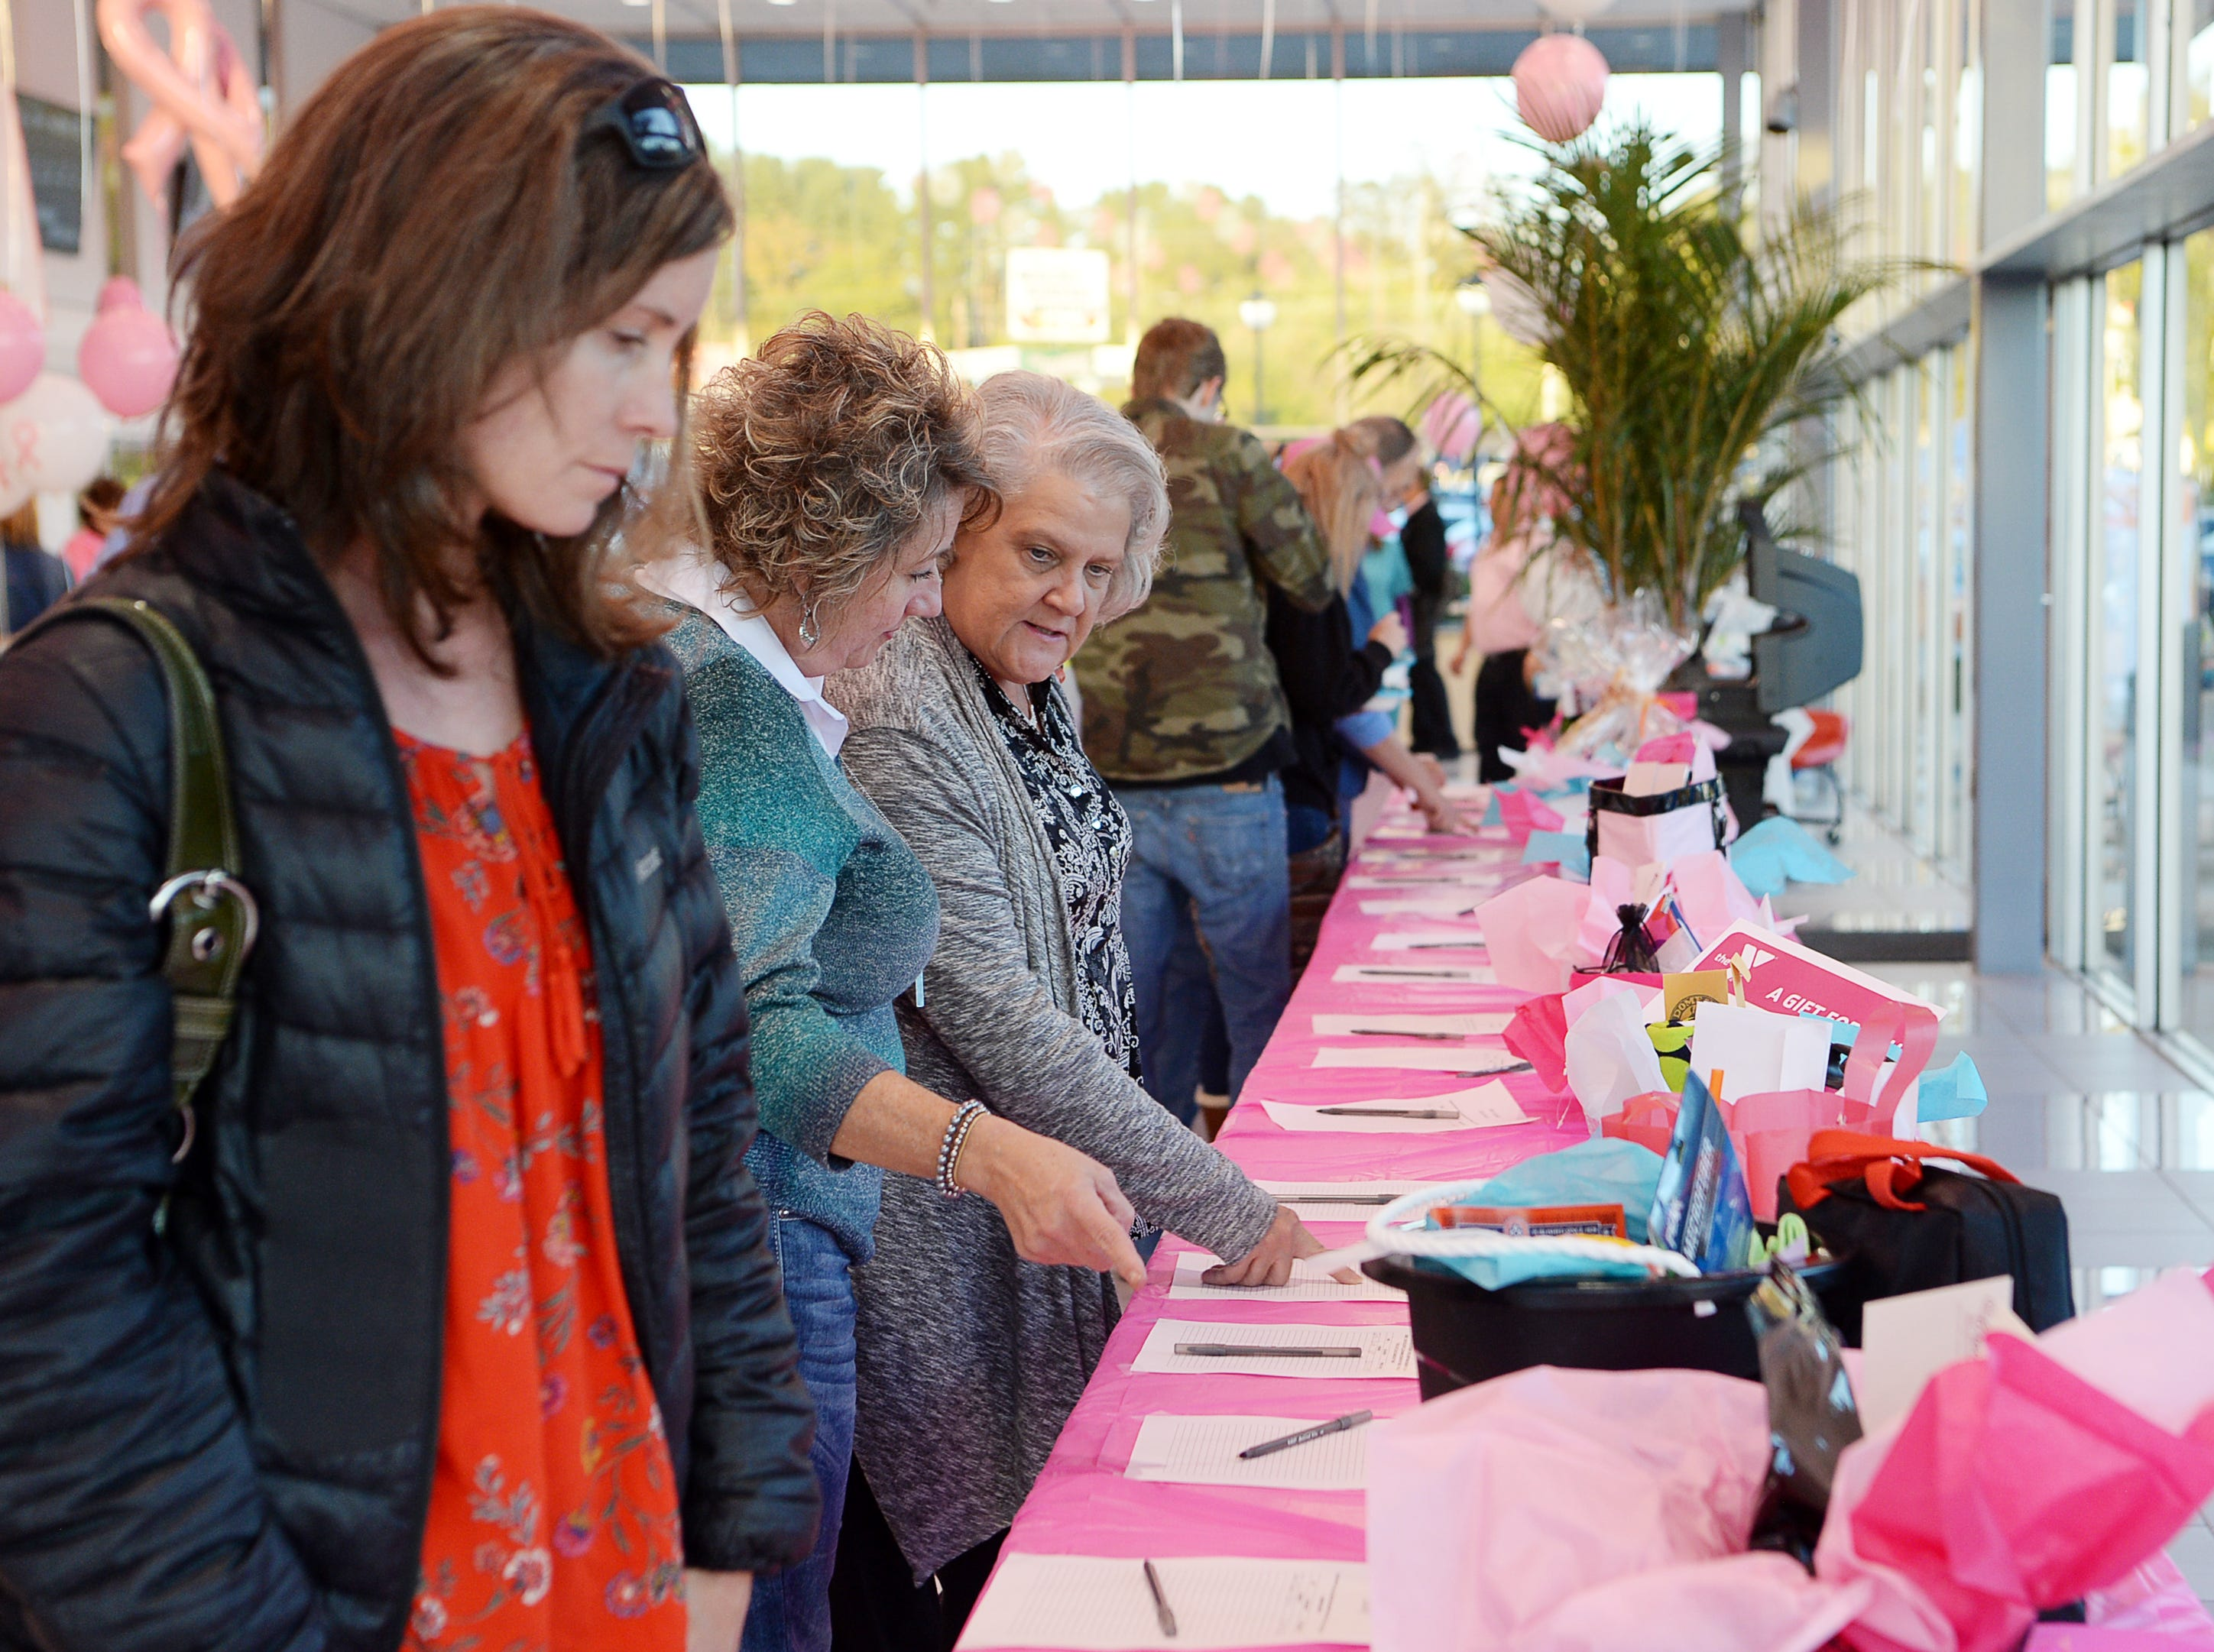 People place bids at the silent auction at the #IDrive4 breast cancer fundraiser benefitting The Hope Chest for Women at Asheville Chevrolet Oct. 18, 2018. During the month of October, the dealership is donating $5 for every #AshevilleChevyDrives4 hashtag on Instagram and Twitter.